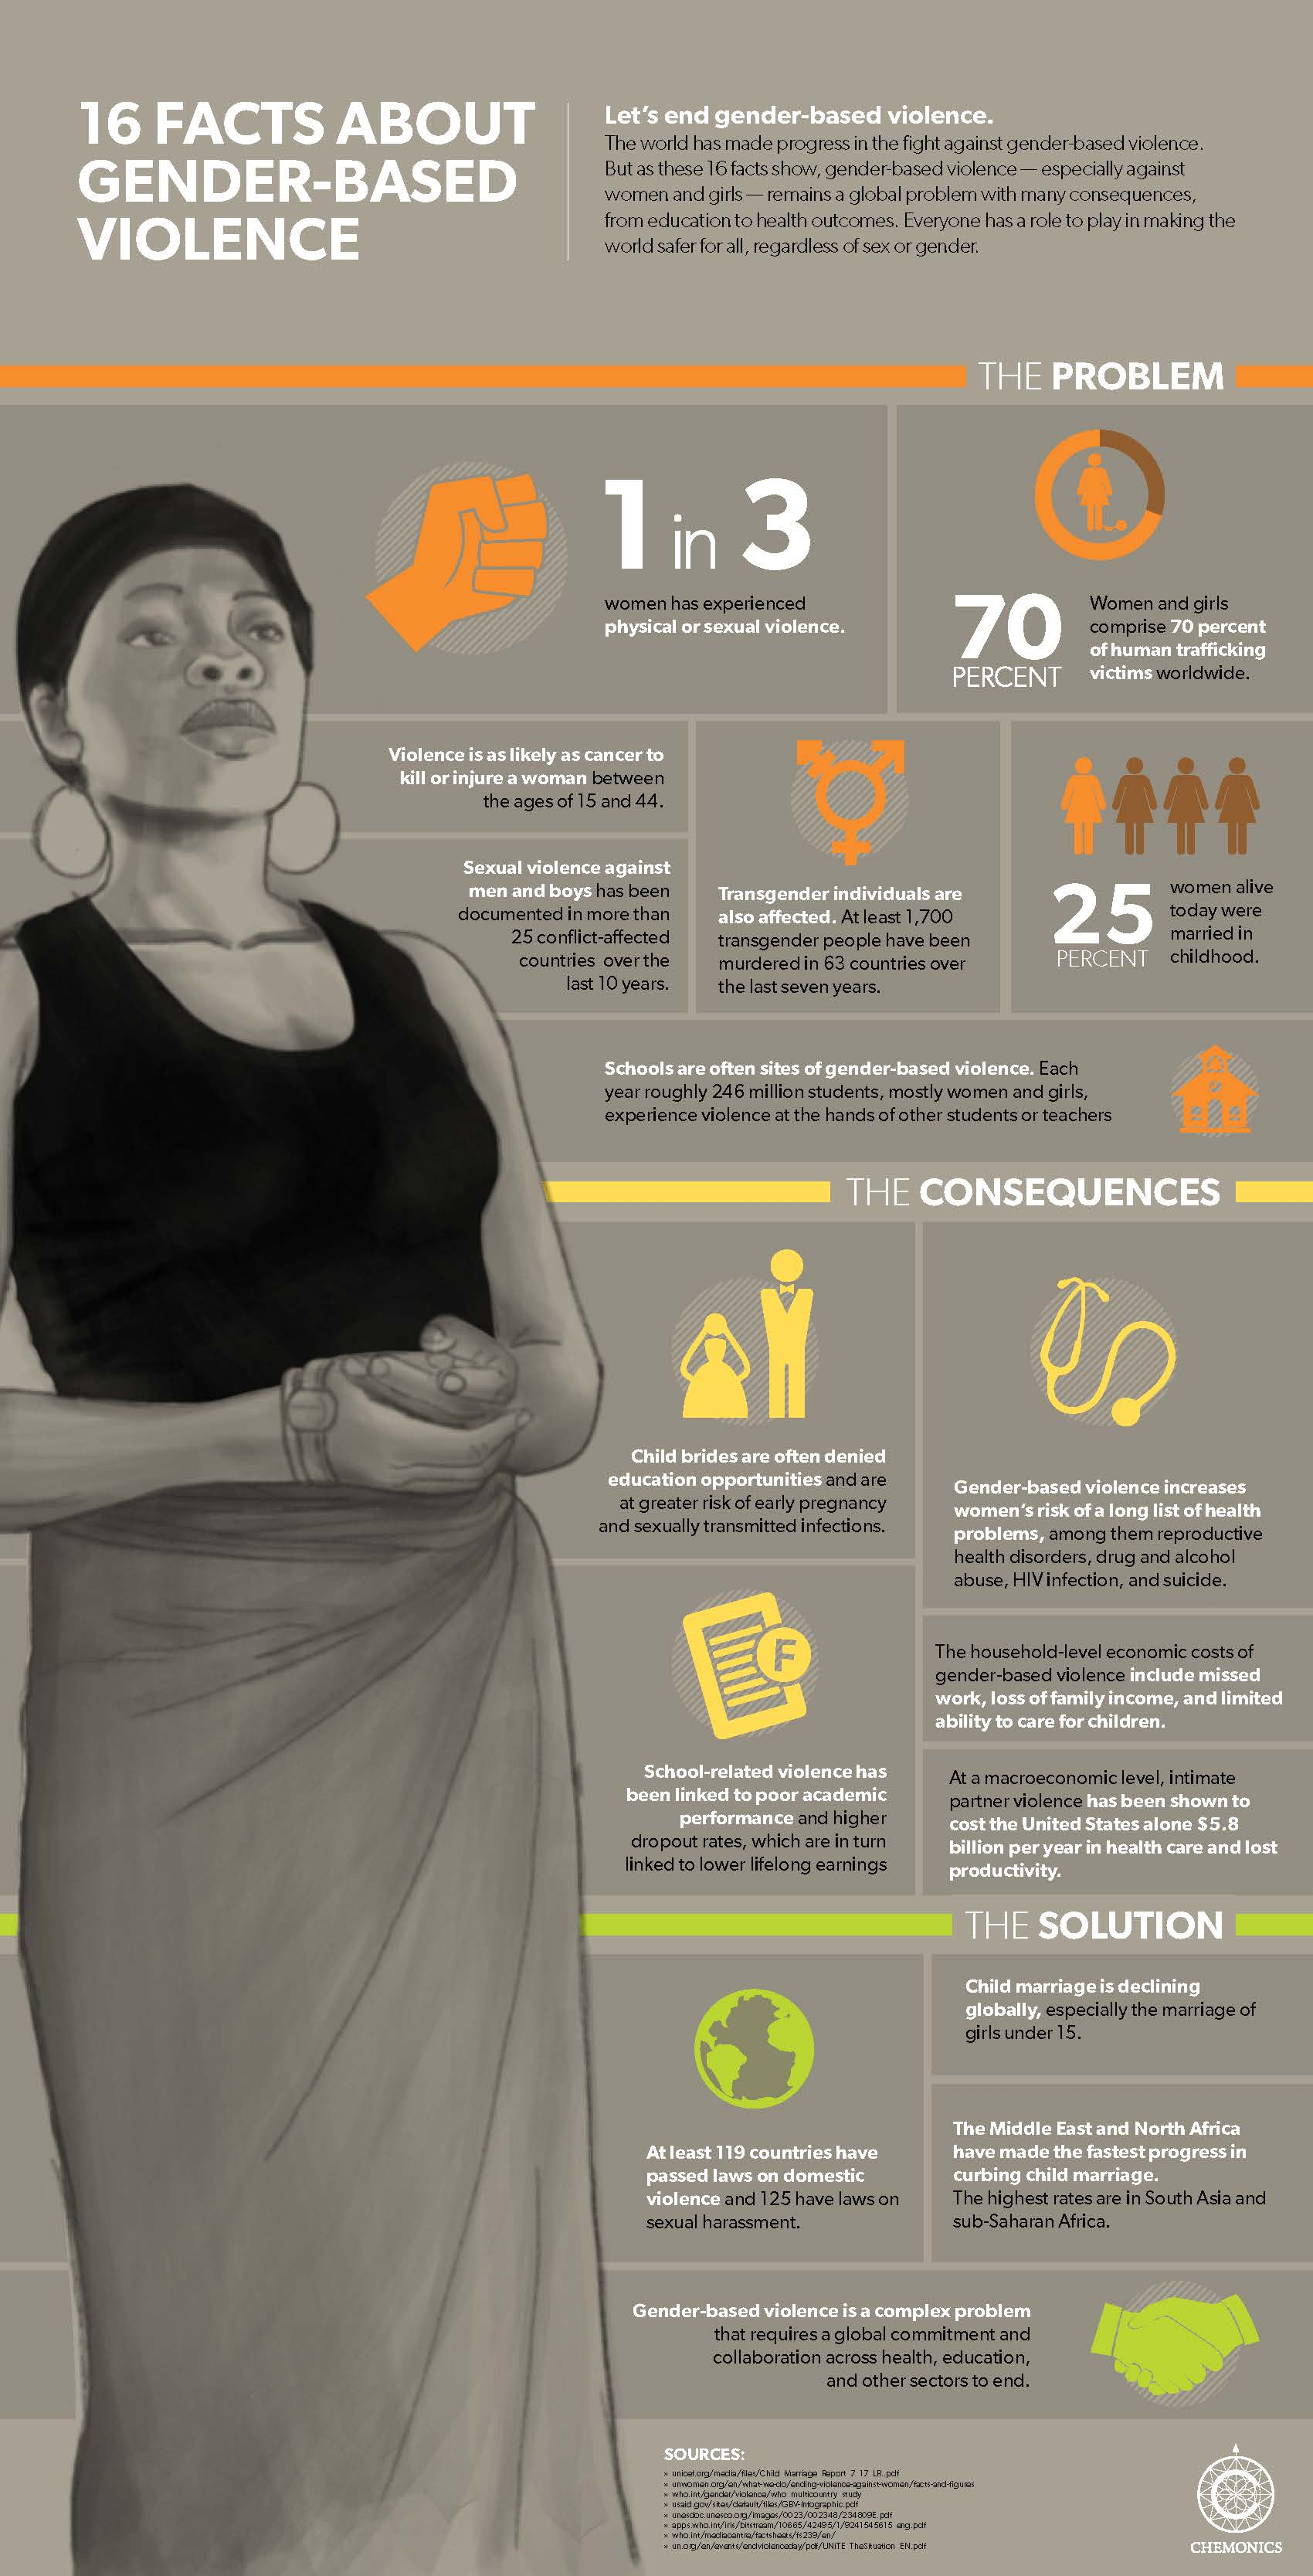 causes and effects of gender based violence The unequal status of men and women is the primary cause of gender-based violence discuss ideas for changing some of the root causes of gender-based violence.